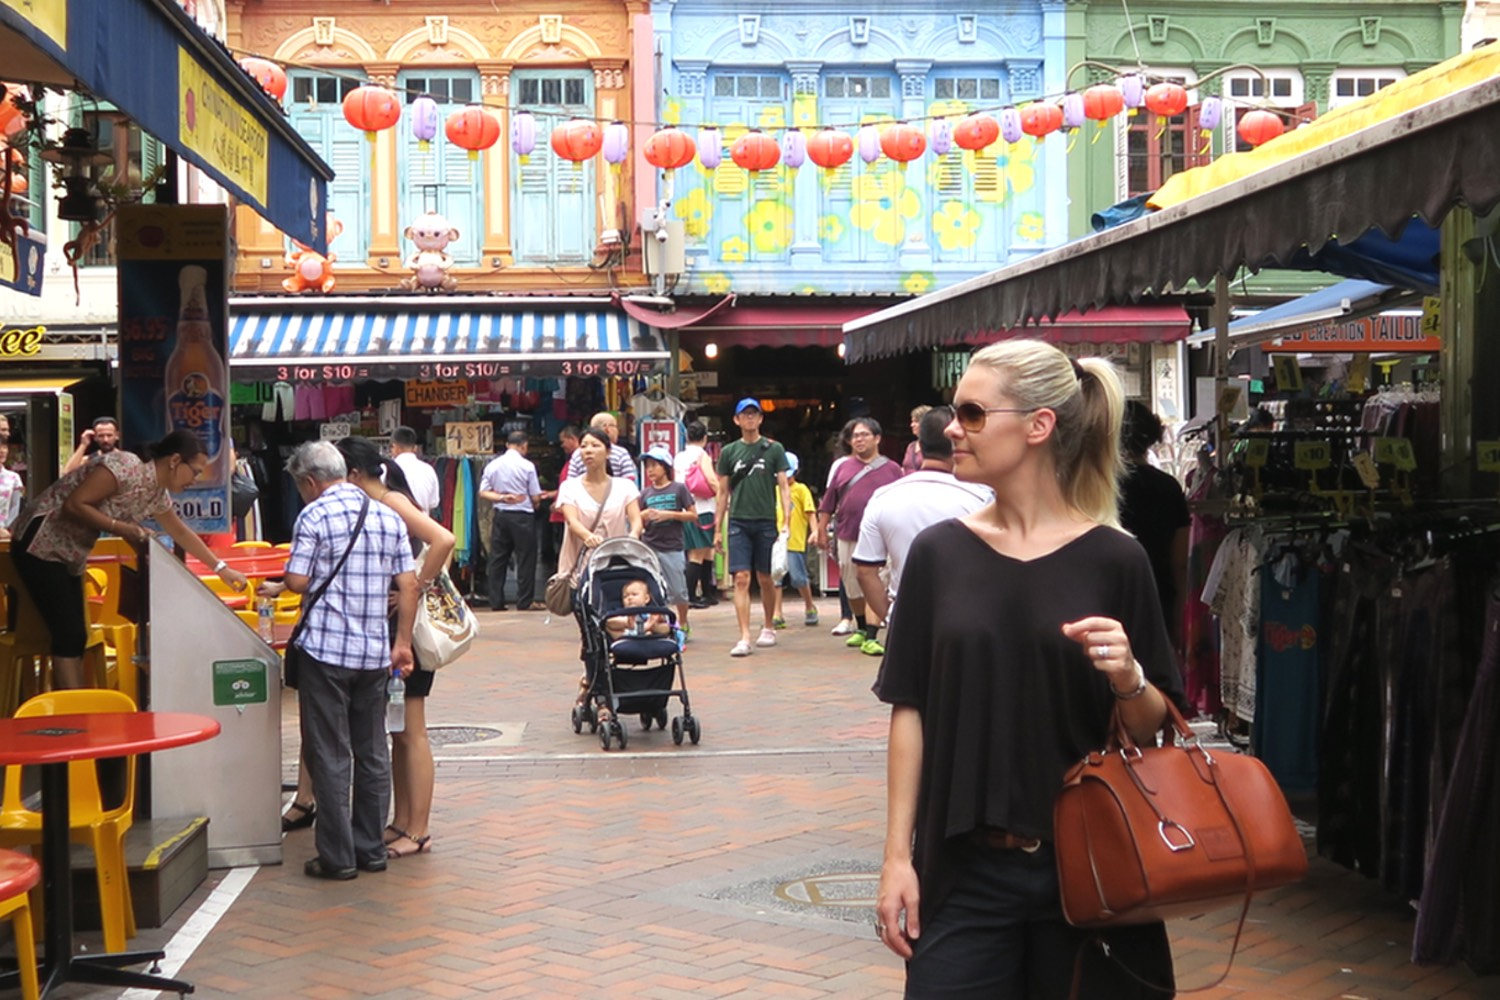 expat-living-singapore-chinatown-asia-character-32-c32